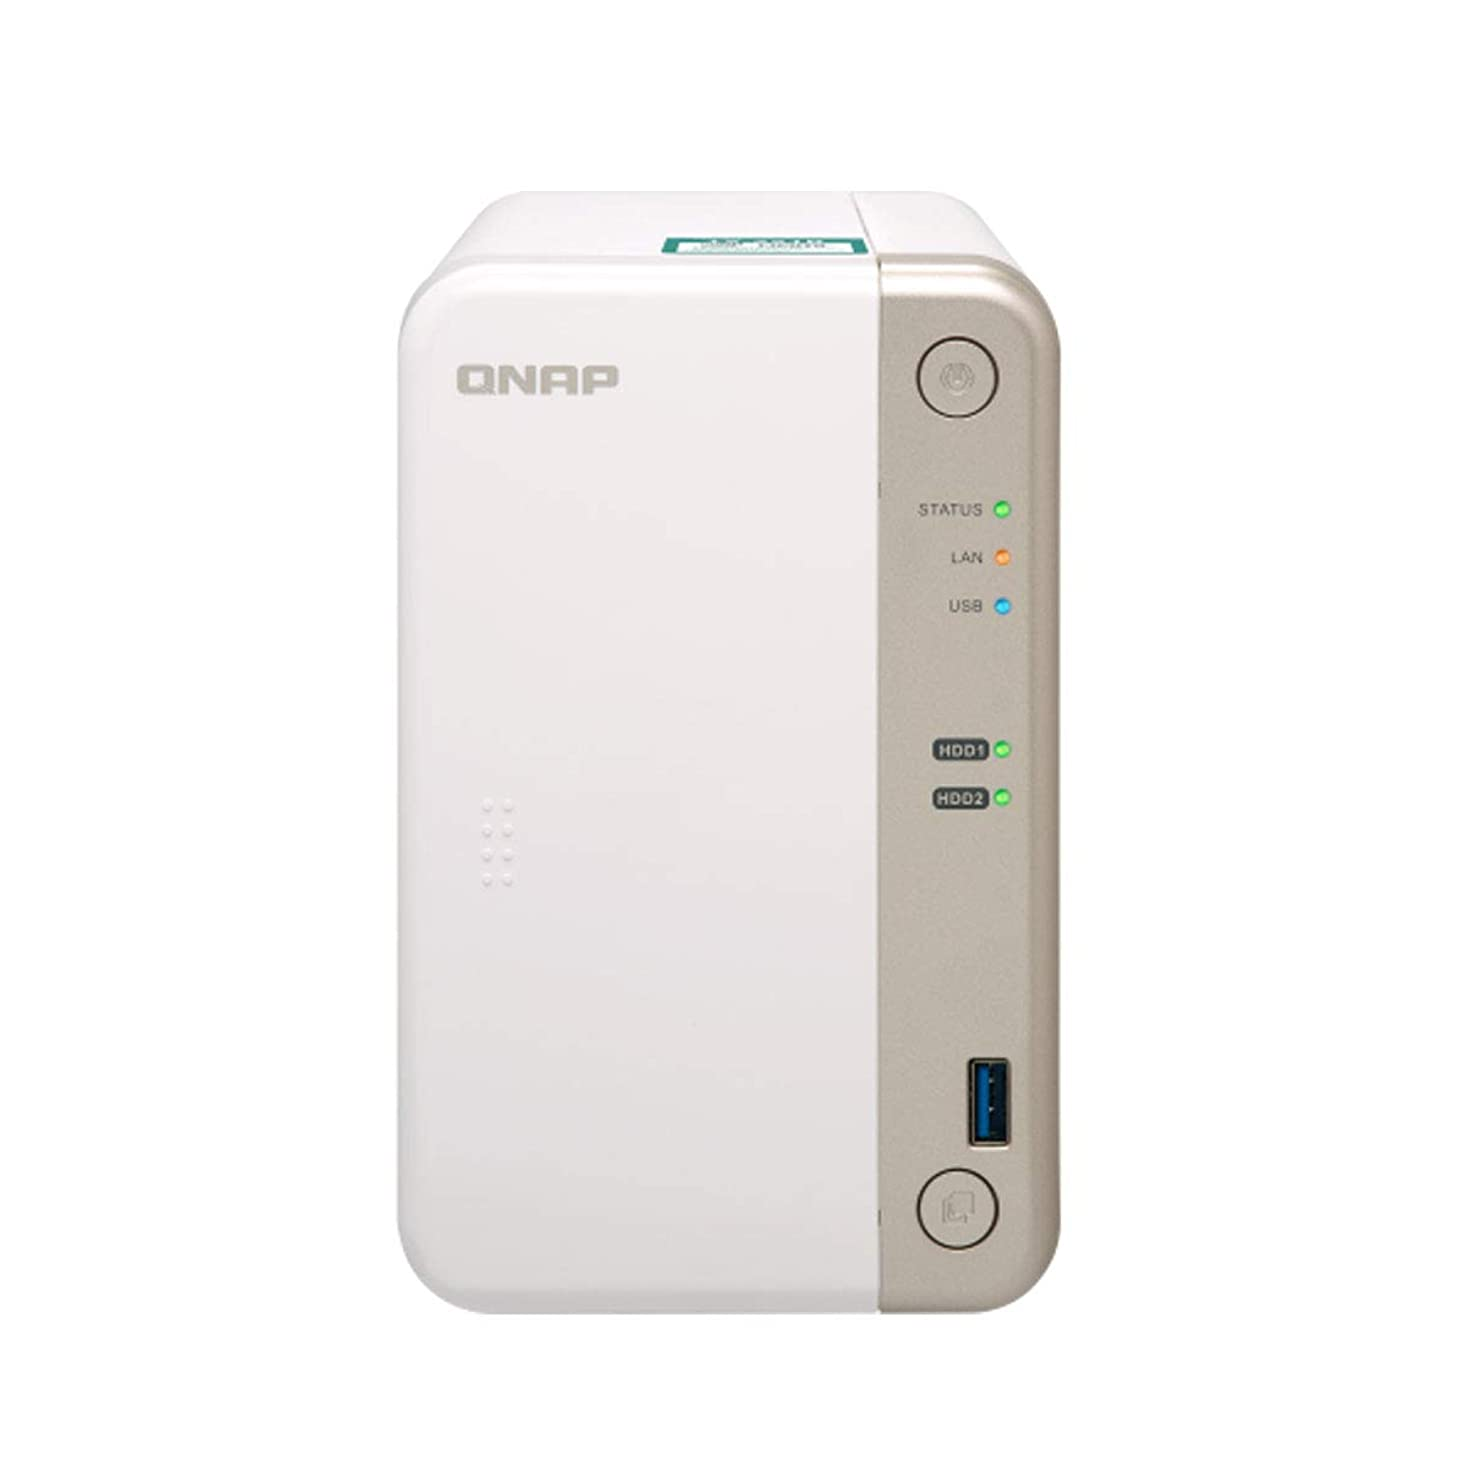 QNAP Bay Home/SOHO NAS with PCIe Expansion (4GB RAM Version) (TS-251B-4G-US)